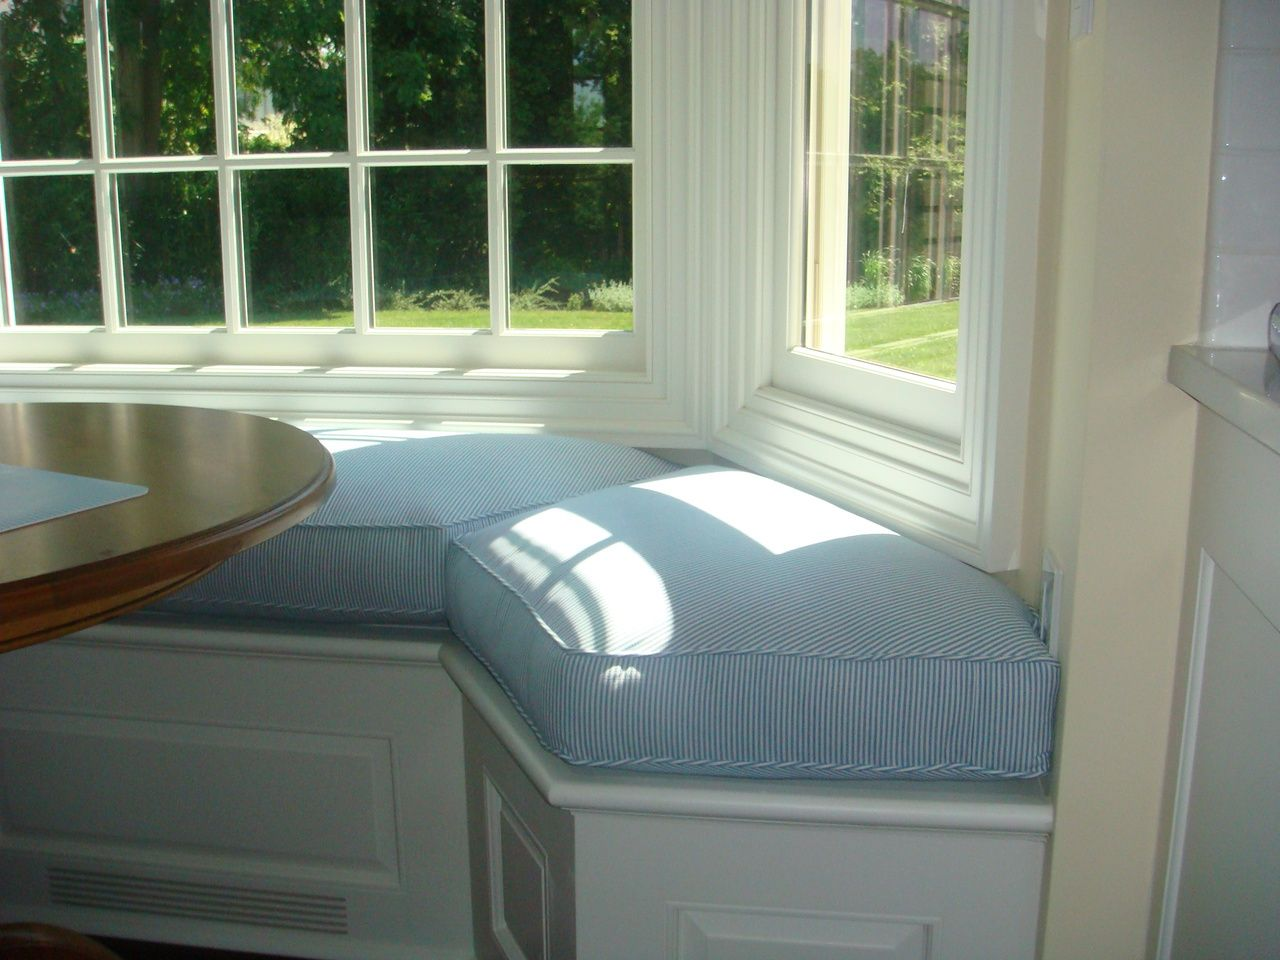 Bay Window Seat Cushion For Kitchen Window Seat Cushions